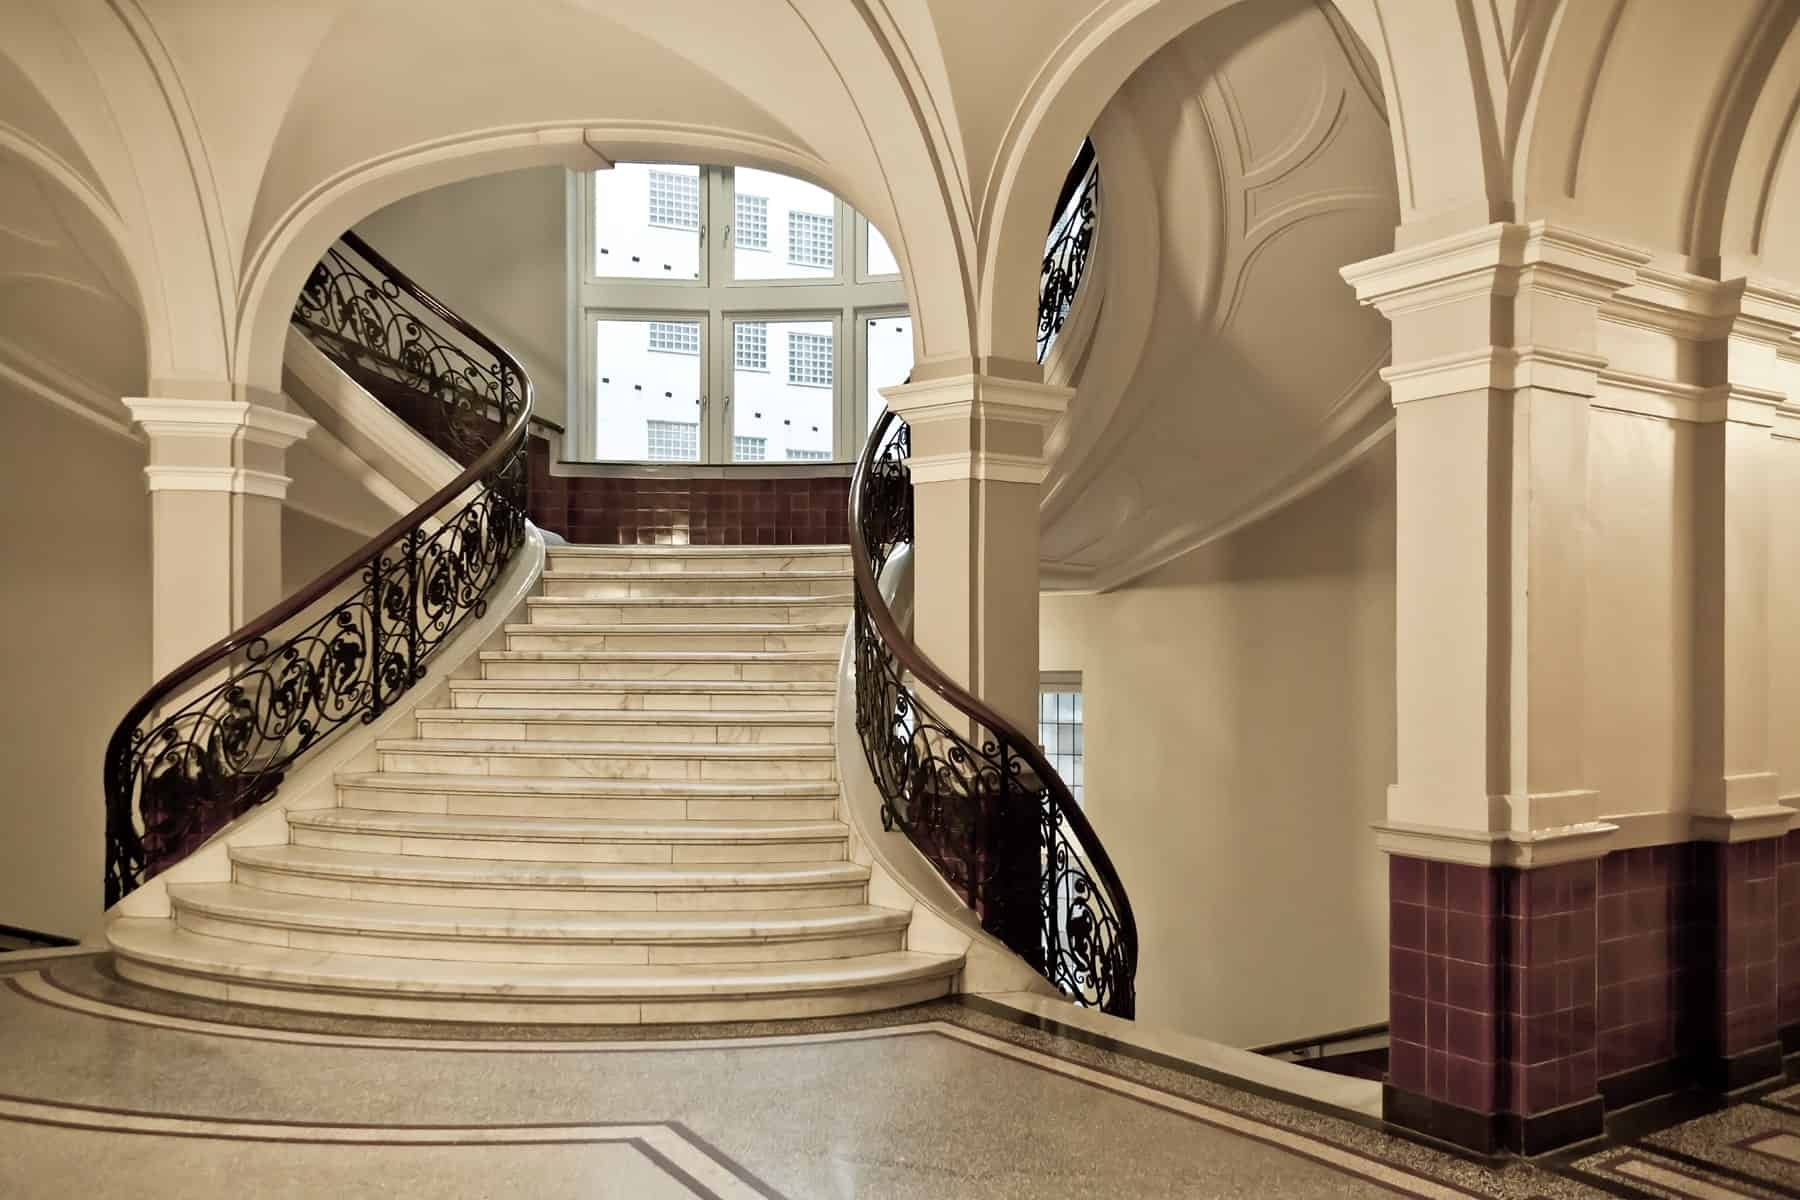 A grand foyer featuring a split staircase with classy marble tiles flooring and elegant railings.